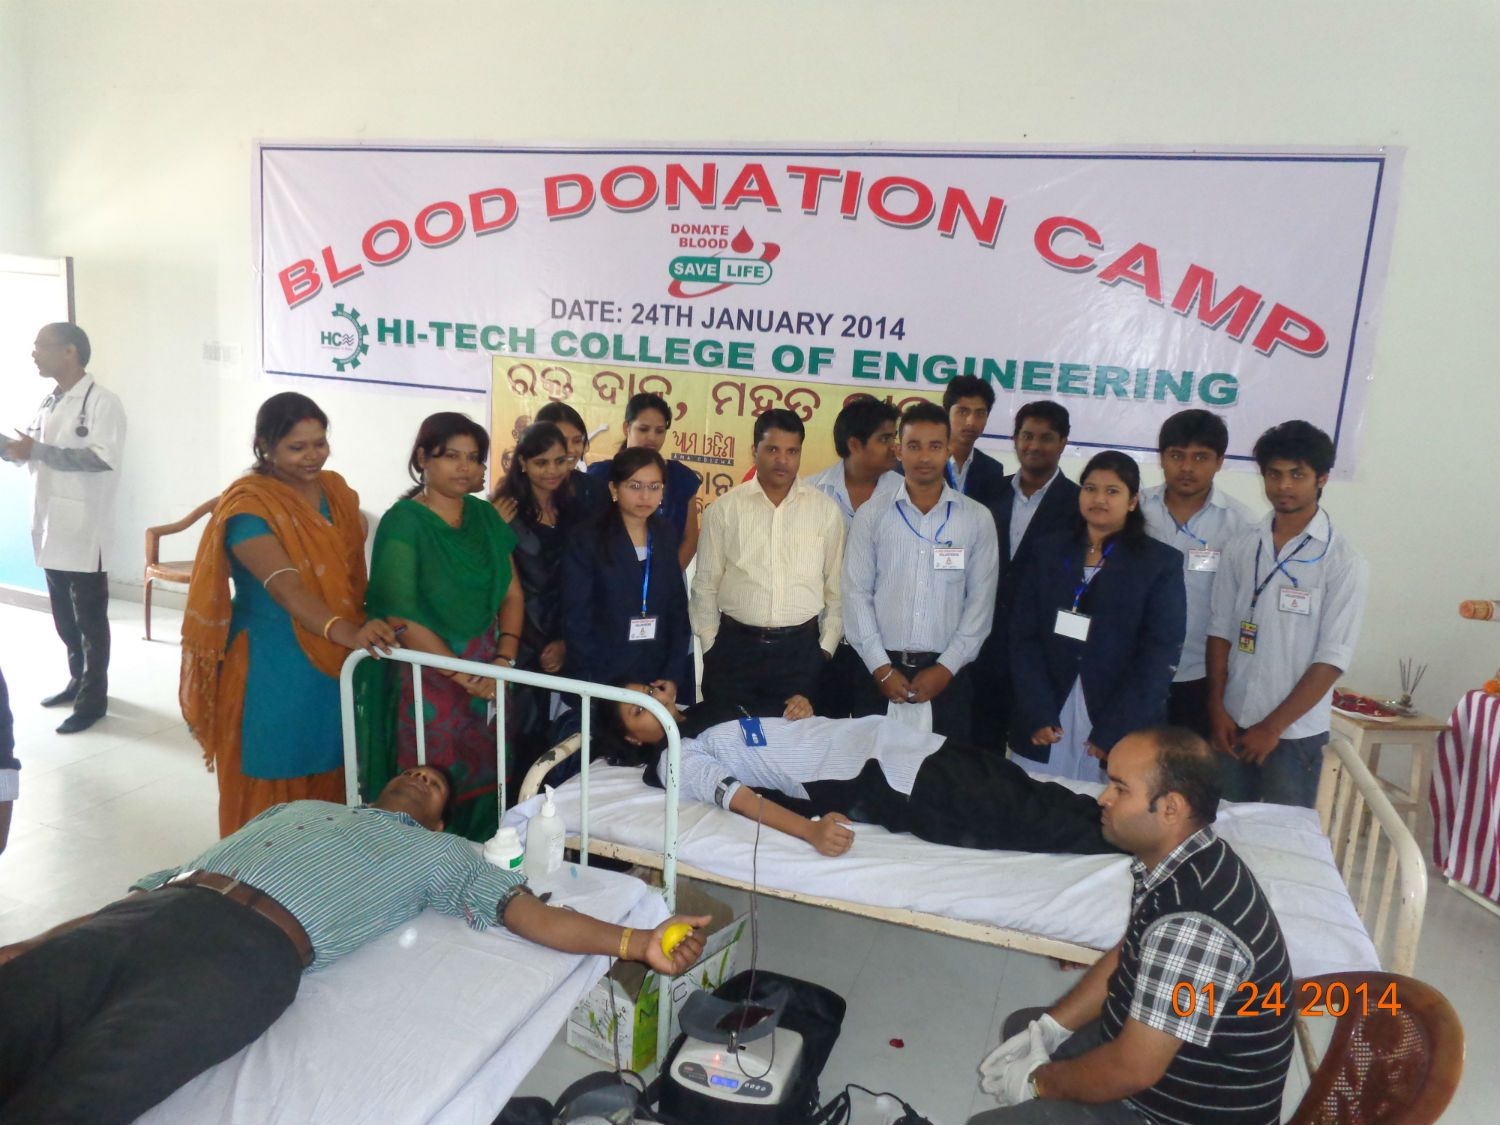 blood-donation-camp